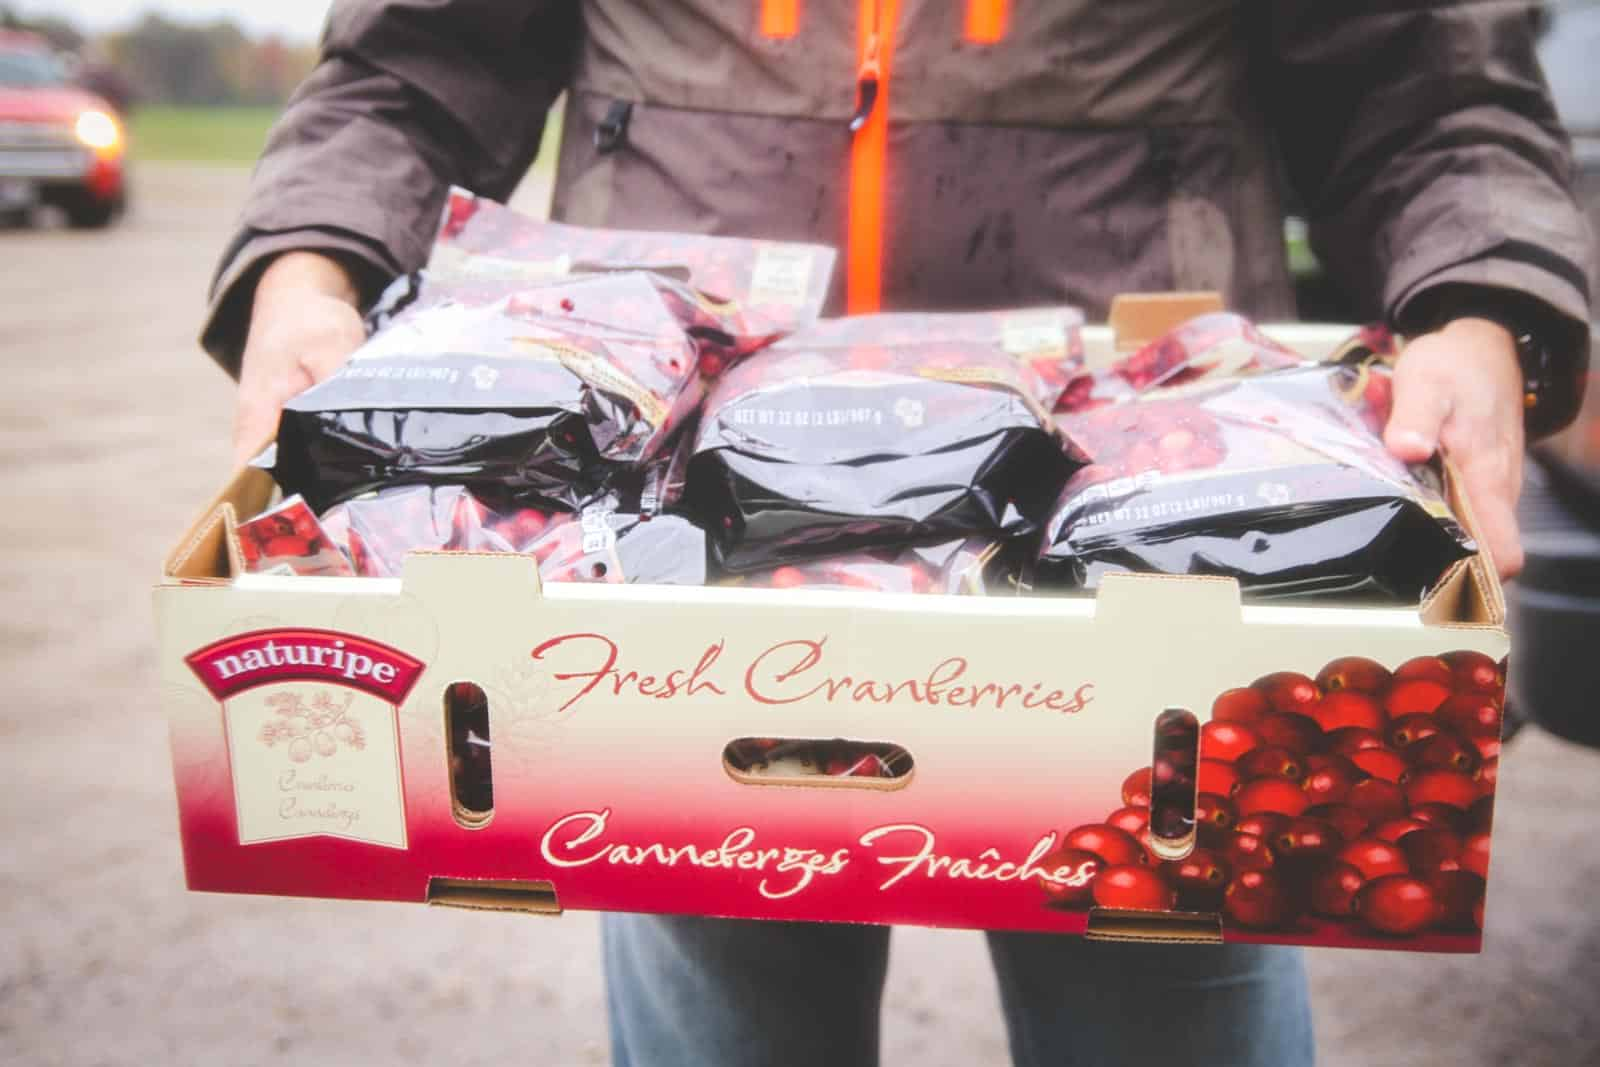 The best Wisconsin cranberries to make cranberry salsa